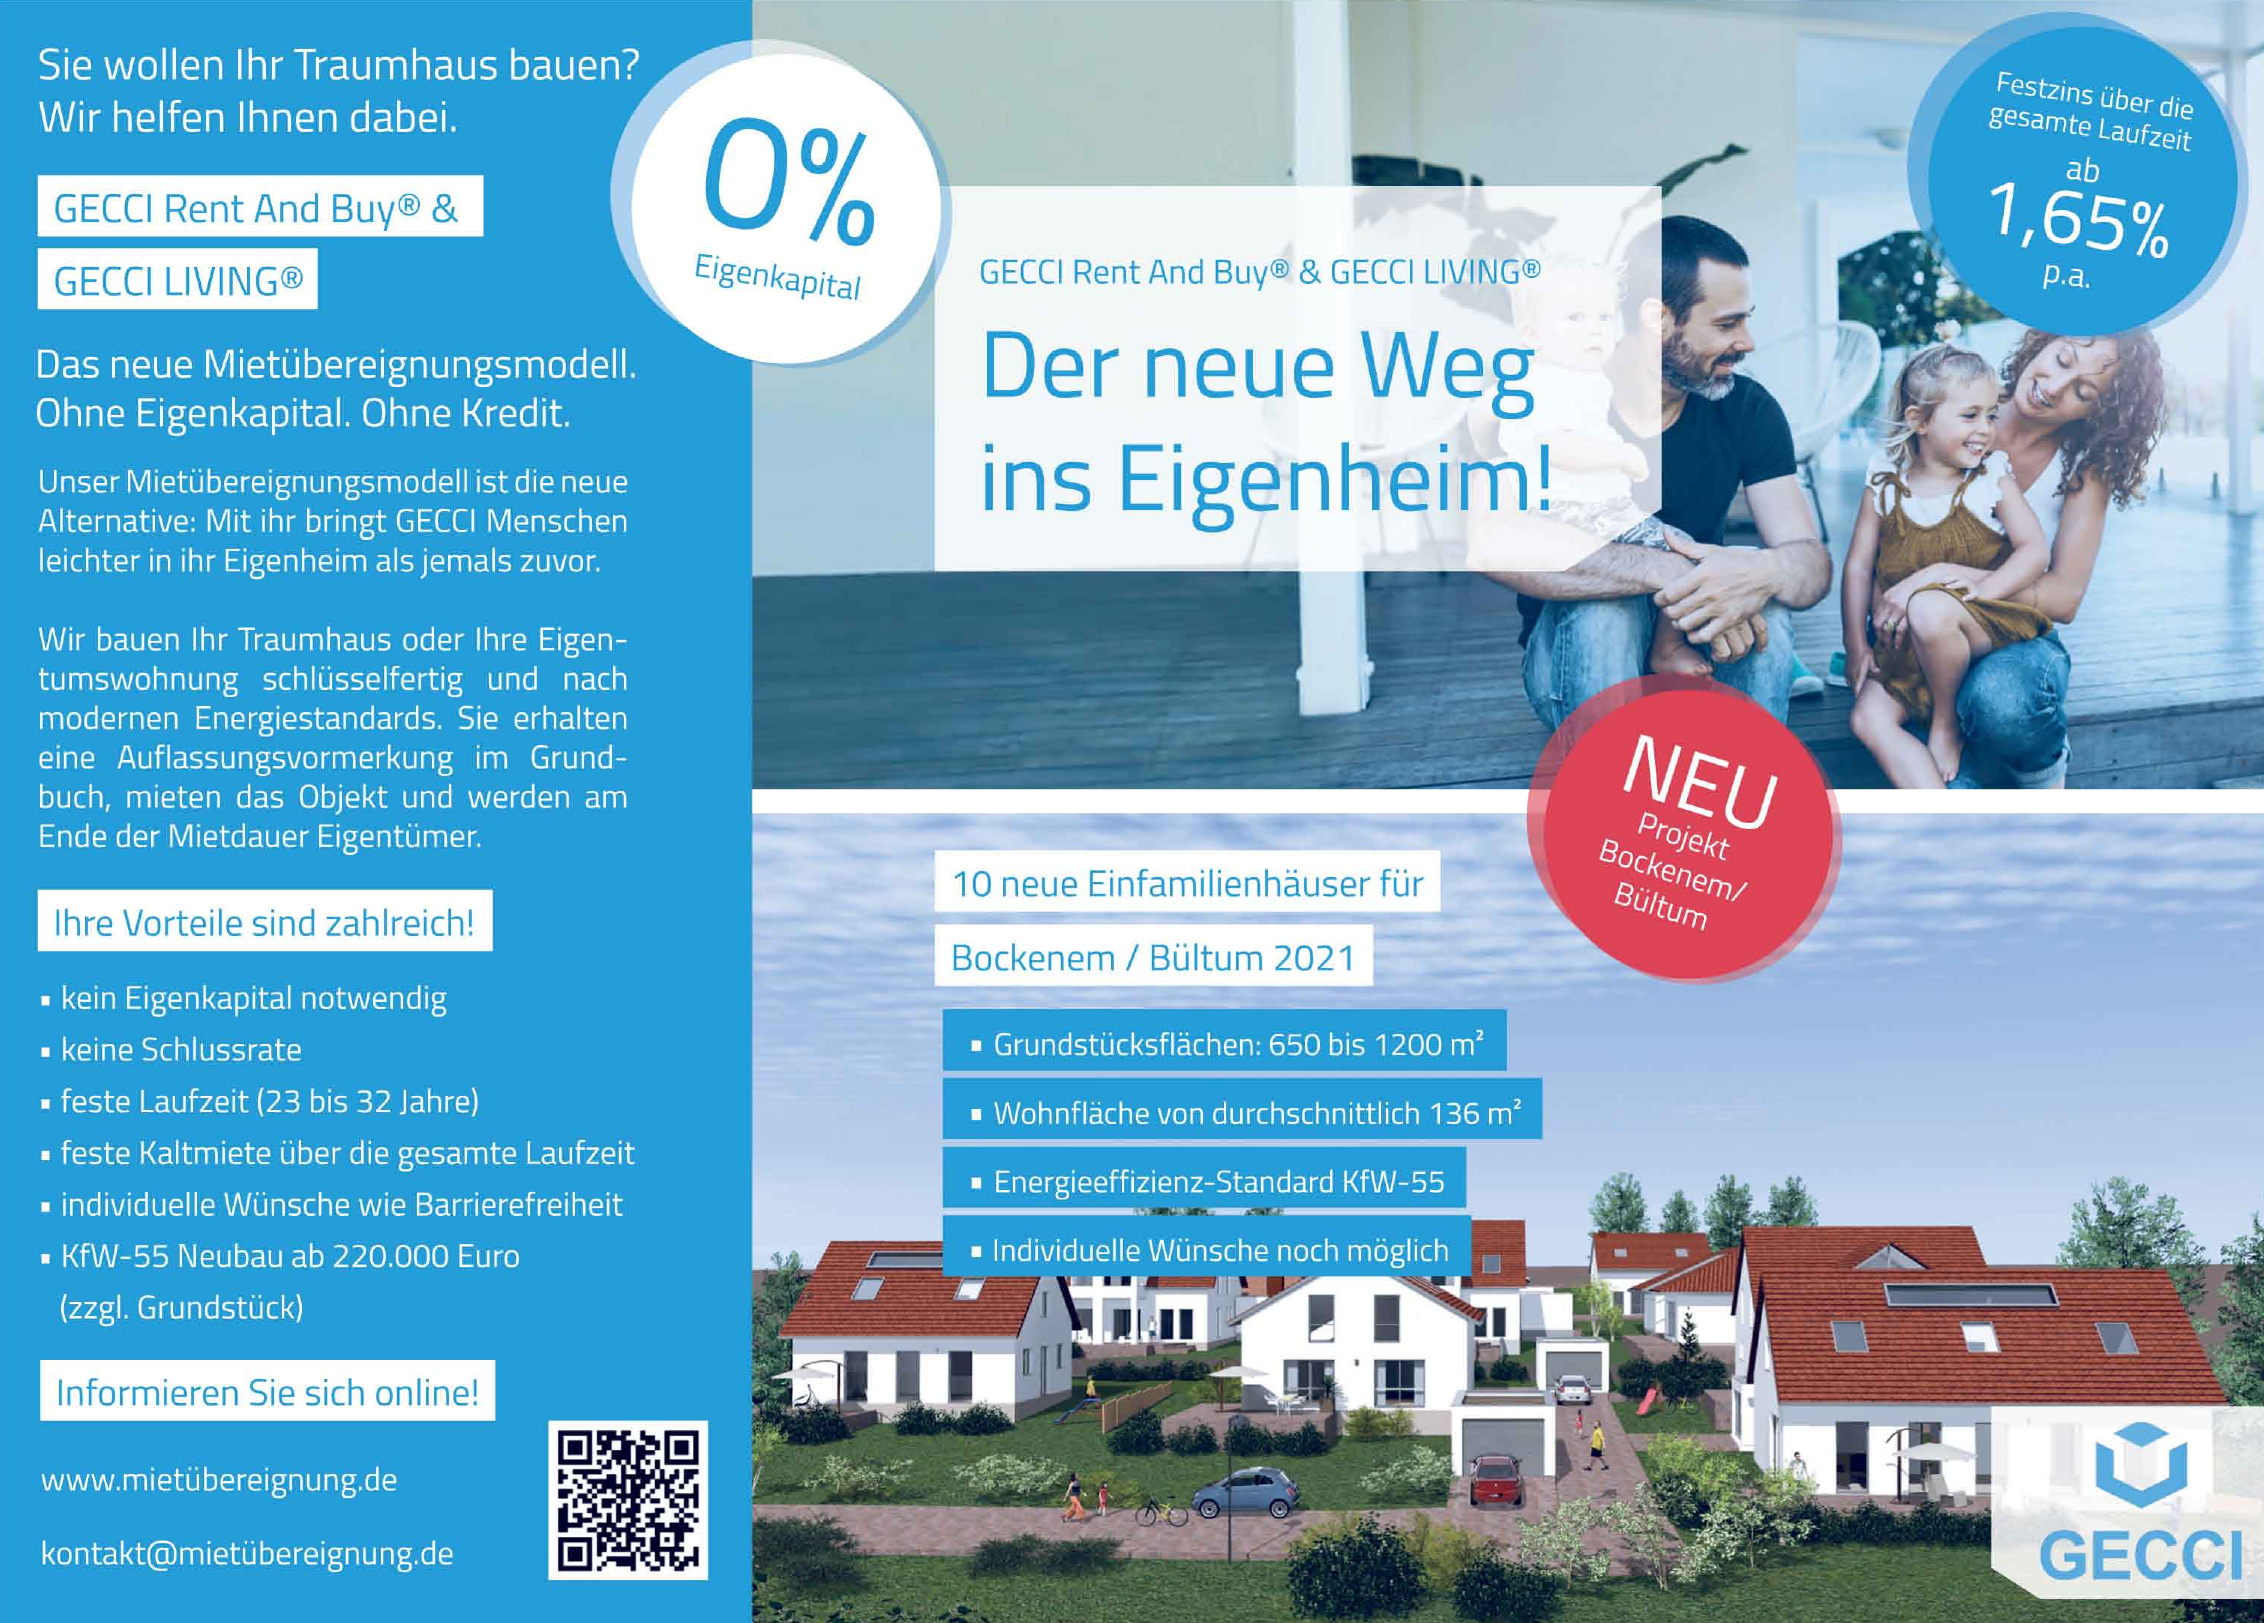 Gecci Rent And Buy® und Gecci Living®